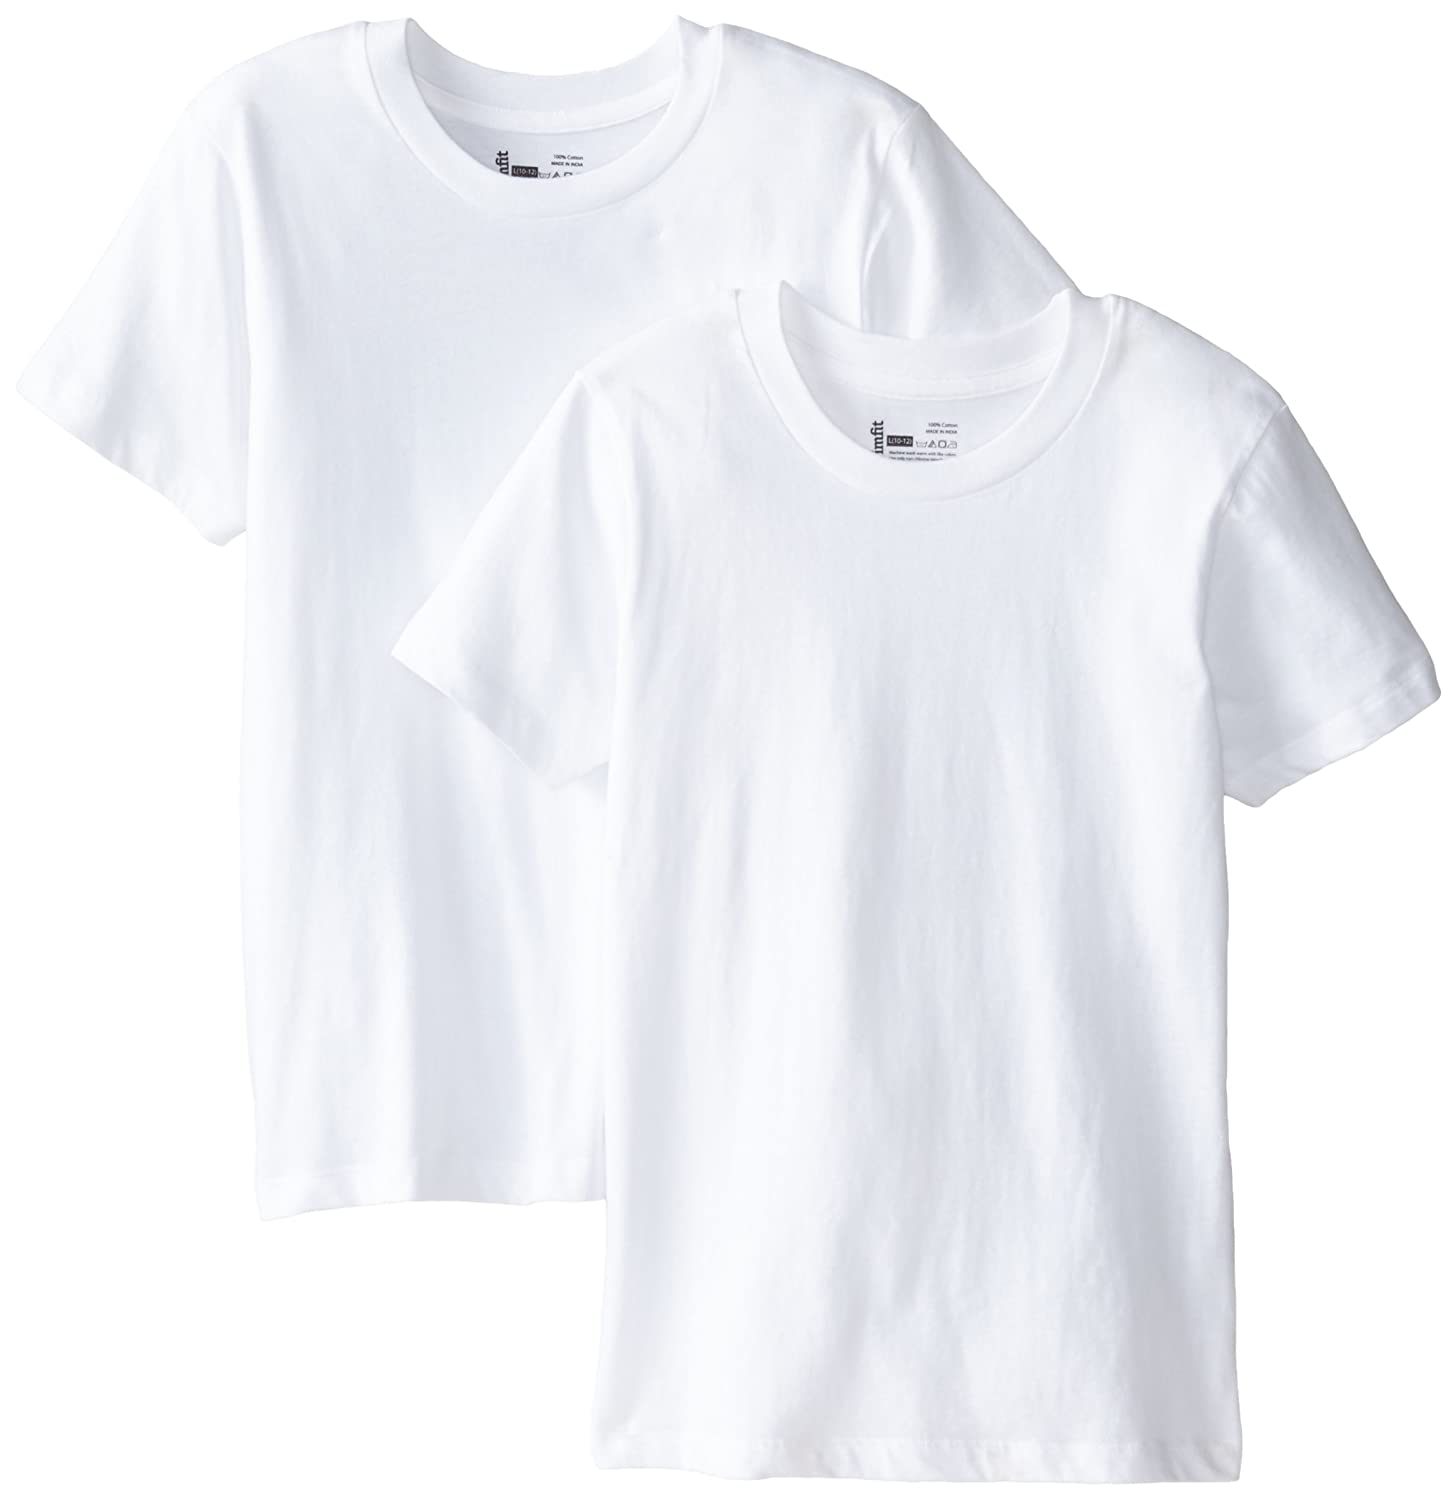 Trimfit Boys Big ' Combed Cotton T-Shirts 2-Pack 86000